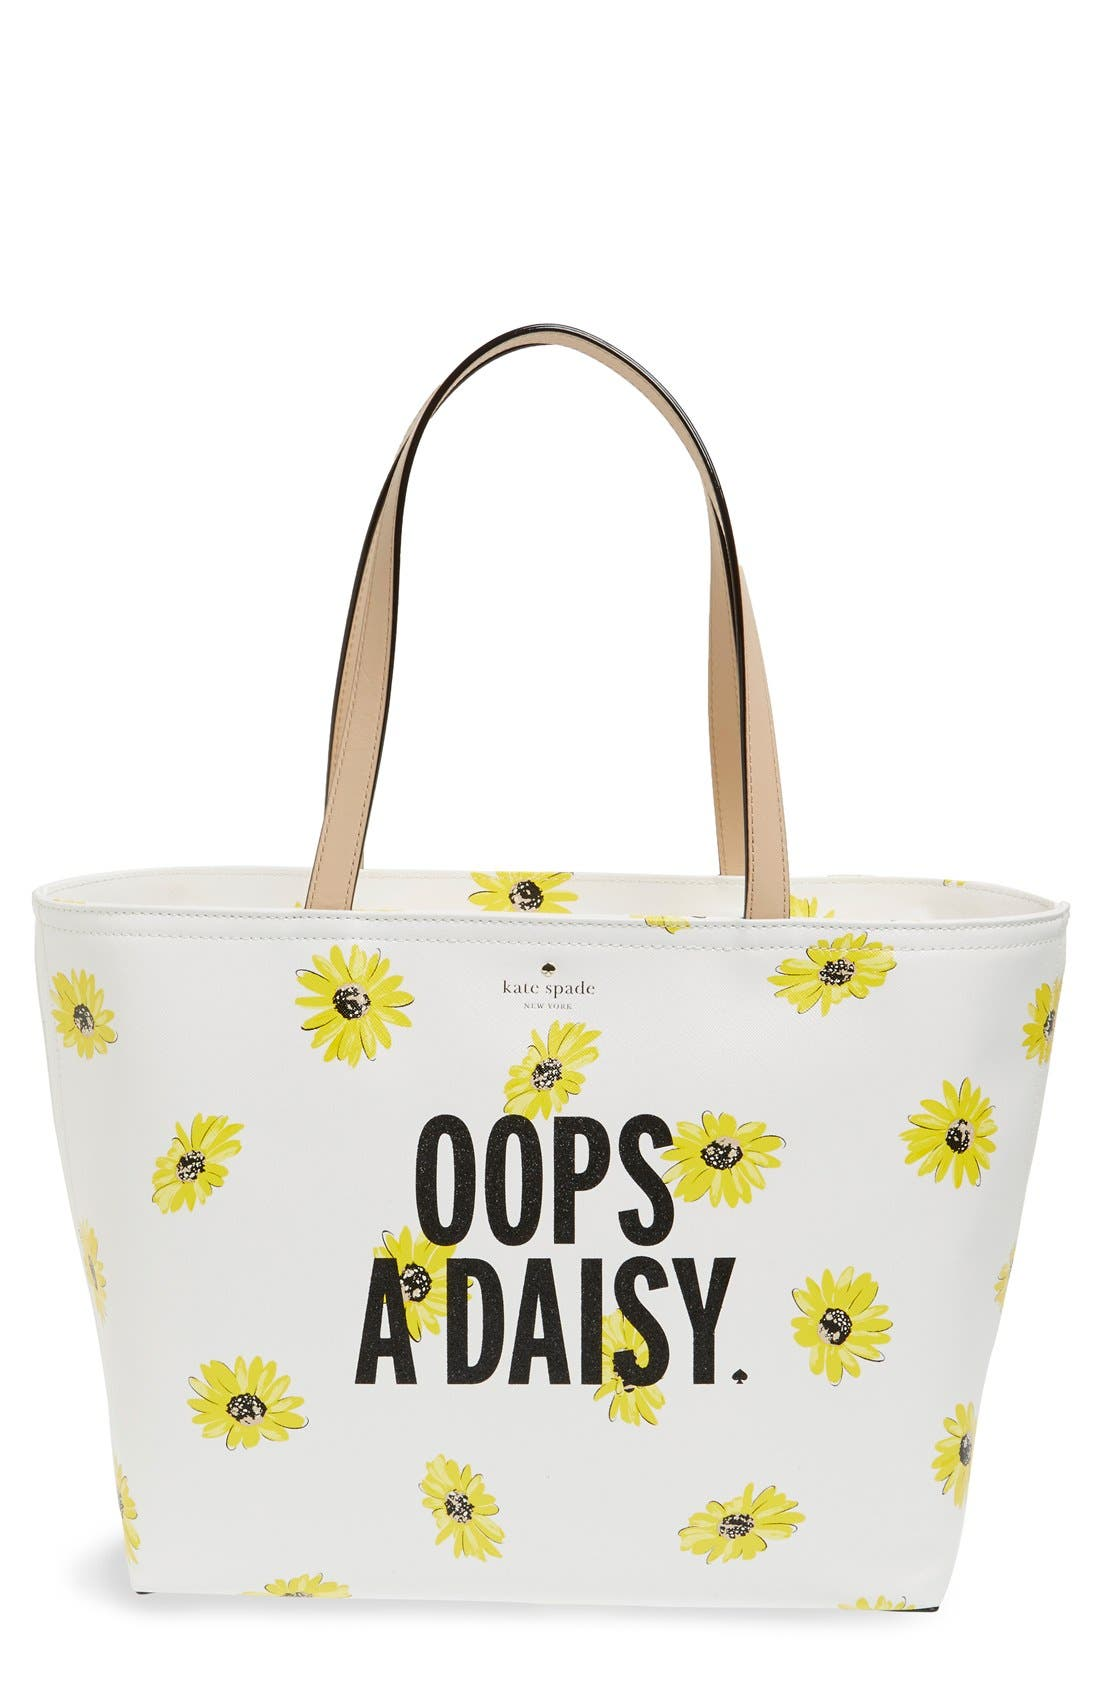 'oops-a-daisy - francis' tote, Main, color, 250